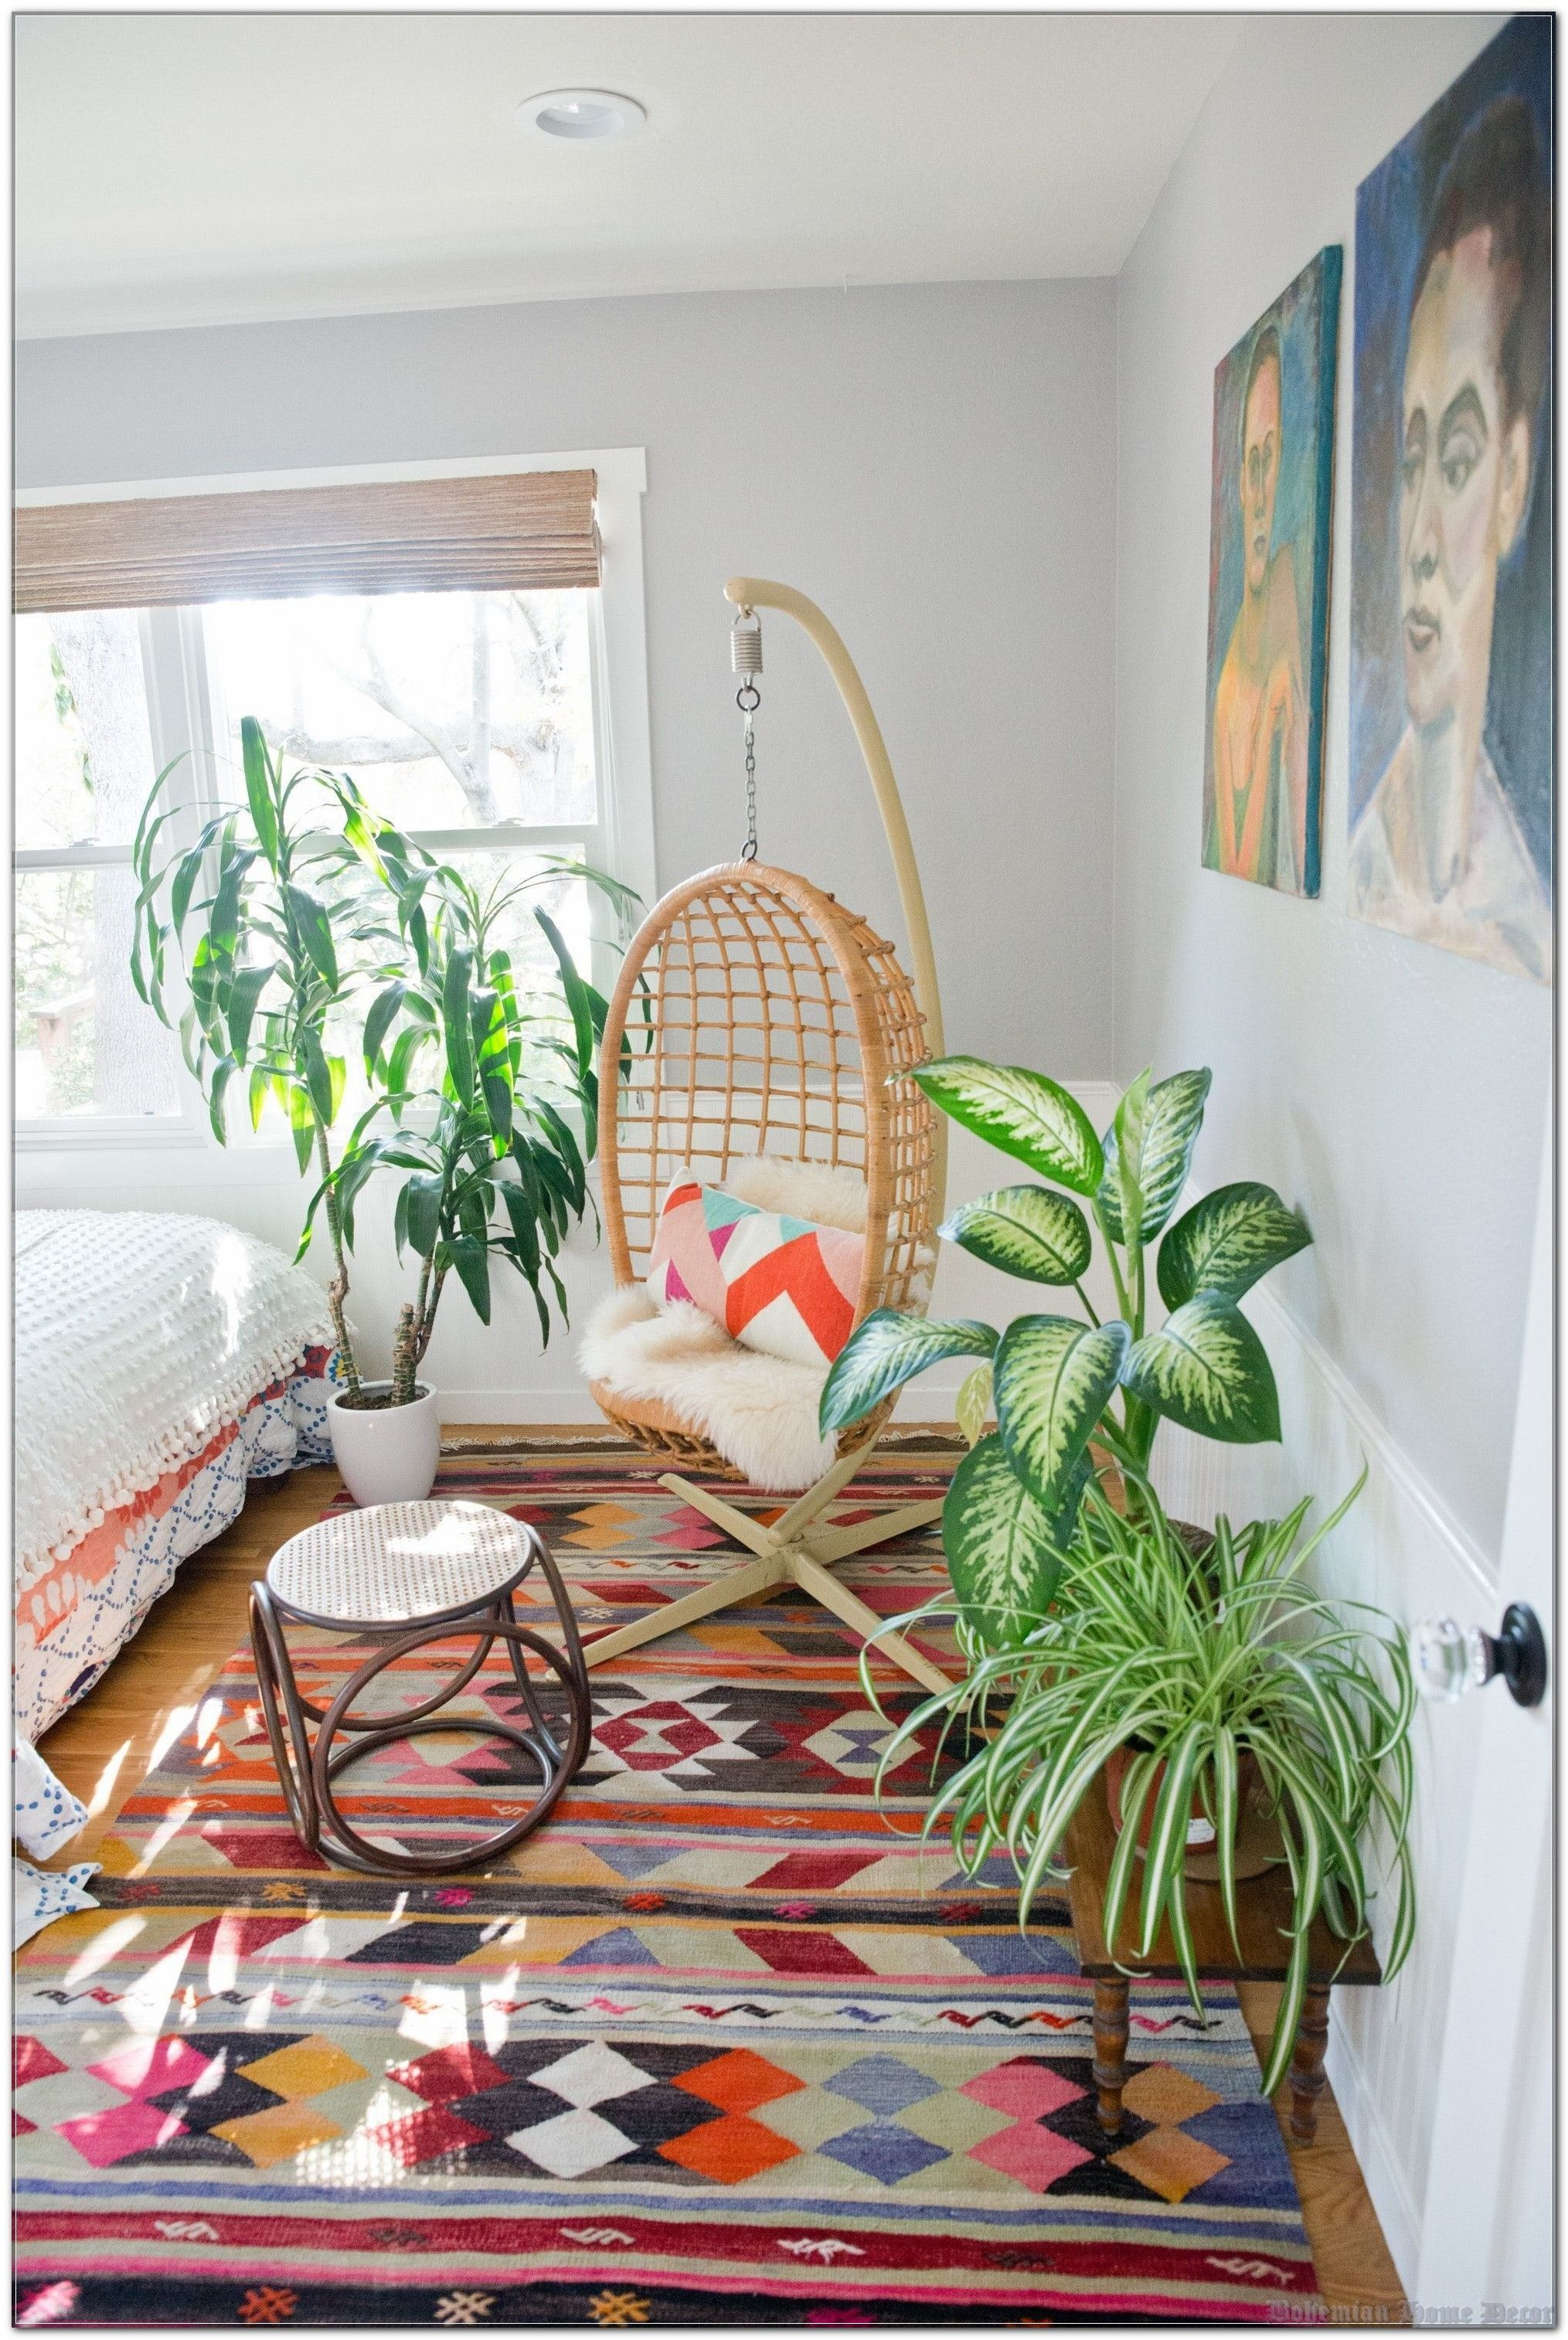 Bohemian Home Decor Consulting – What The Heck Is That?